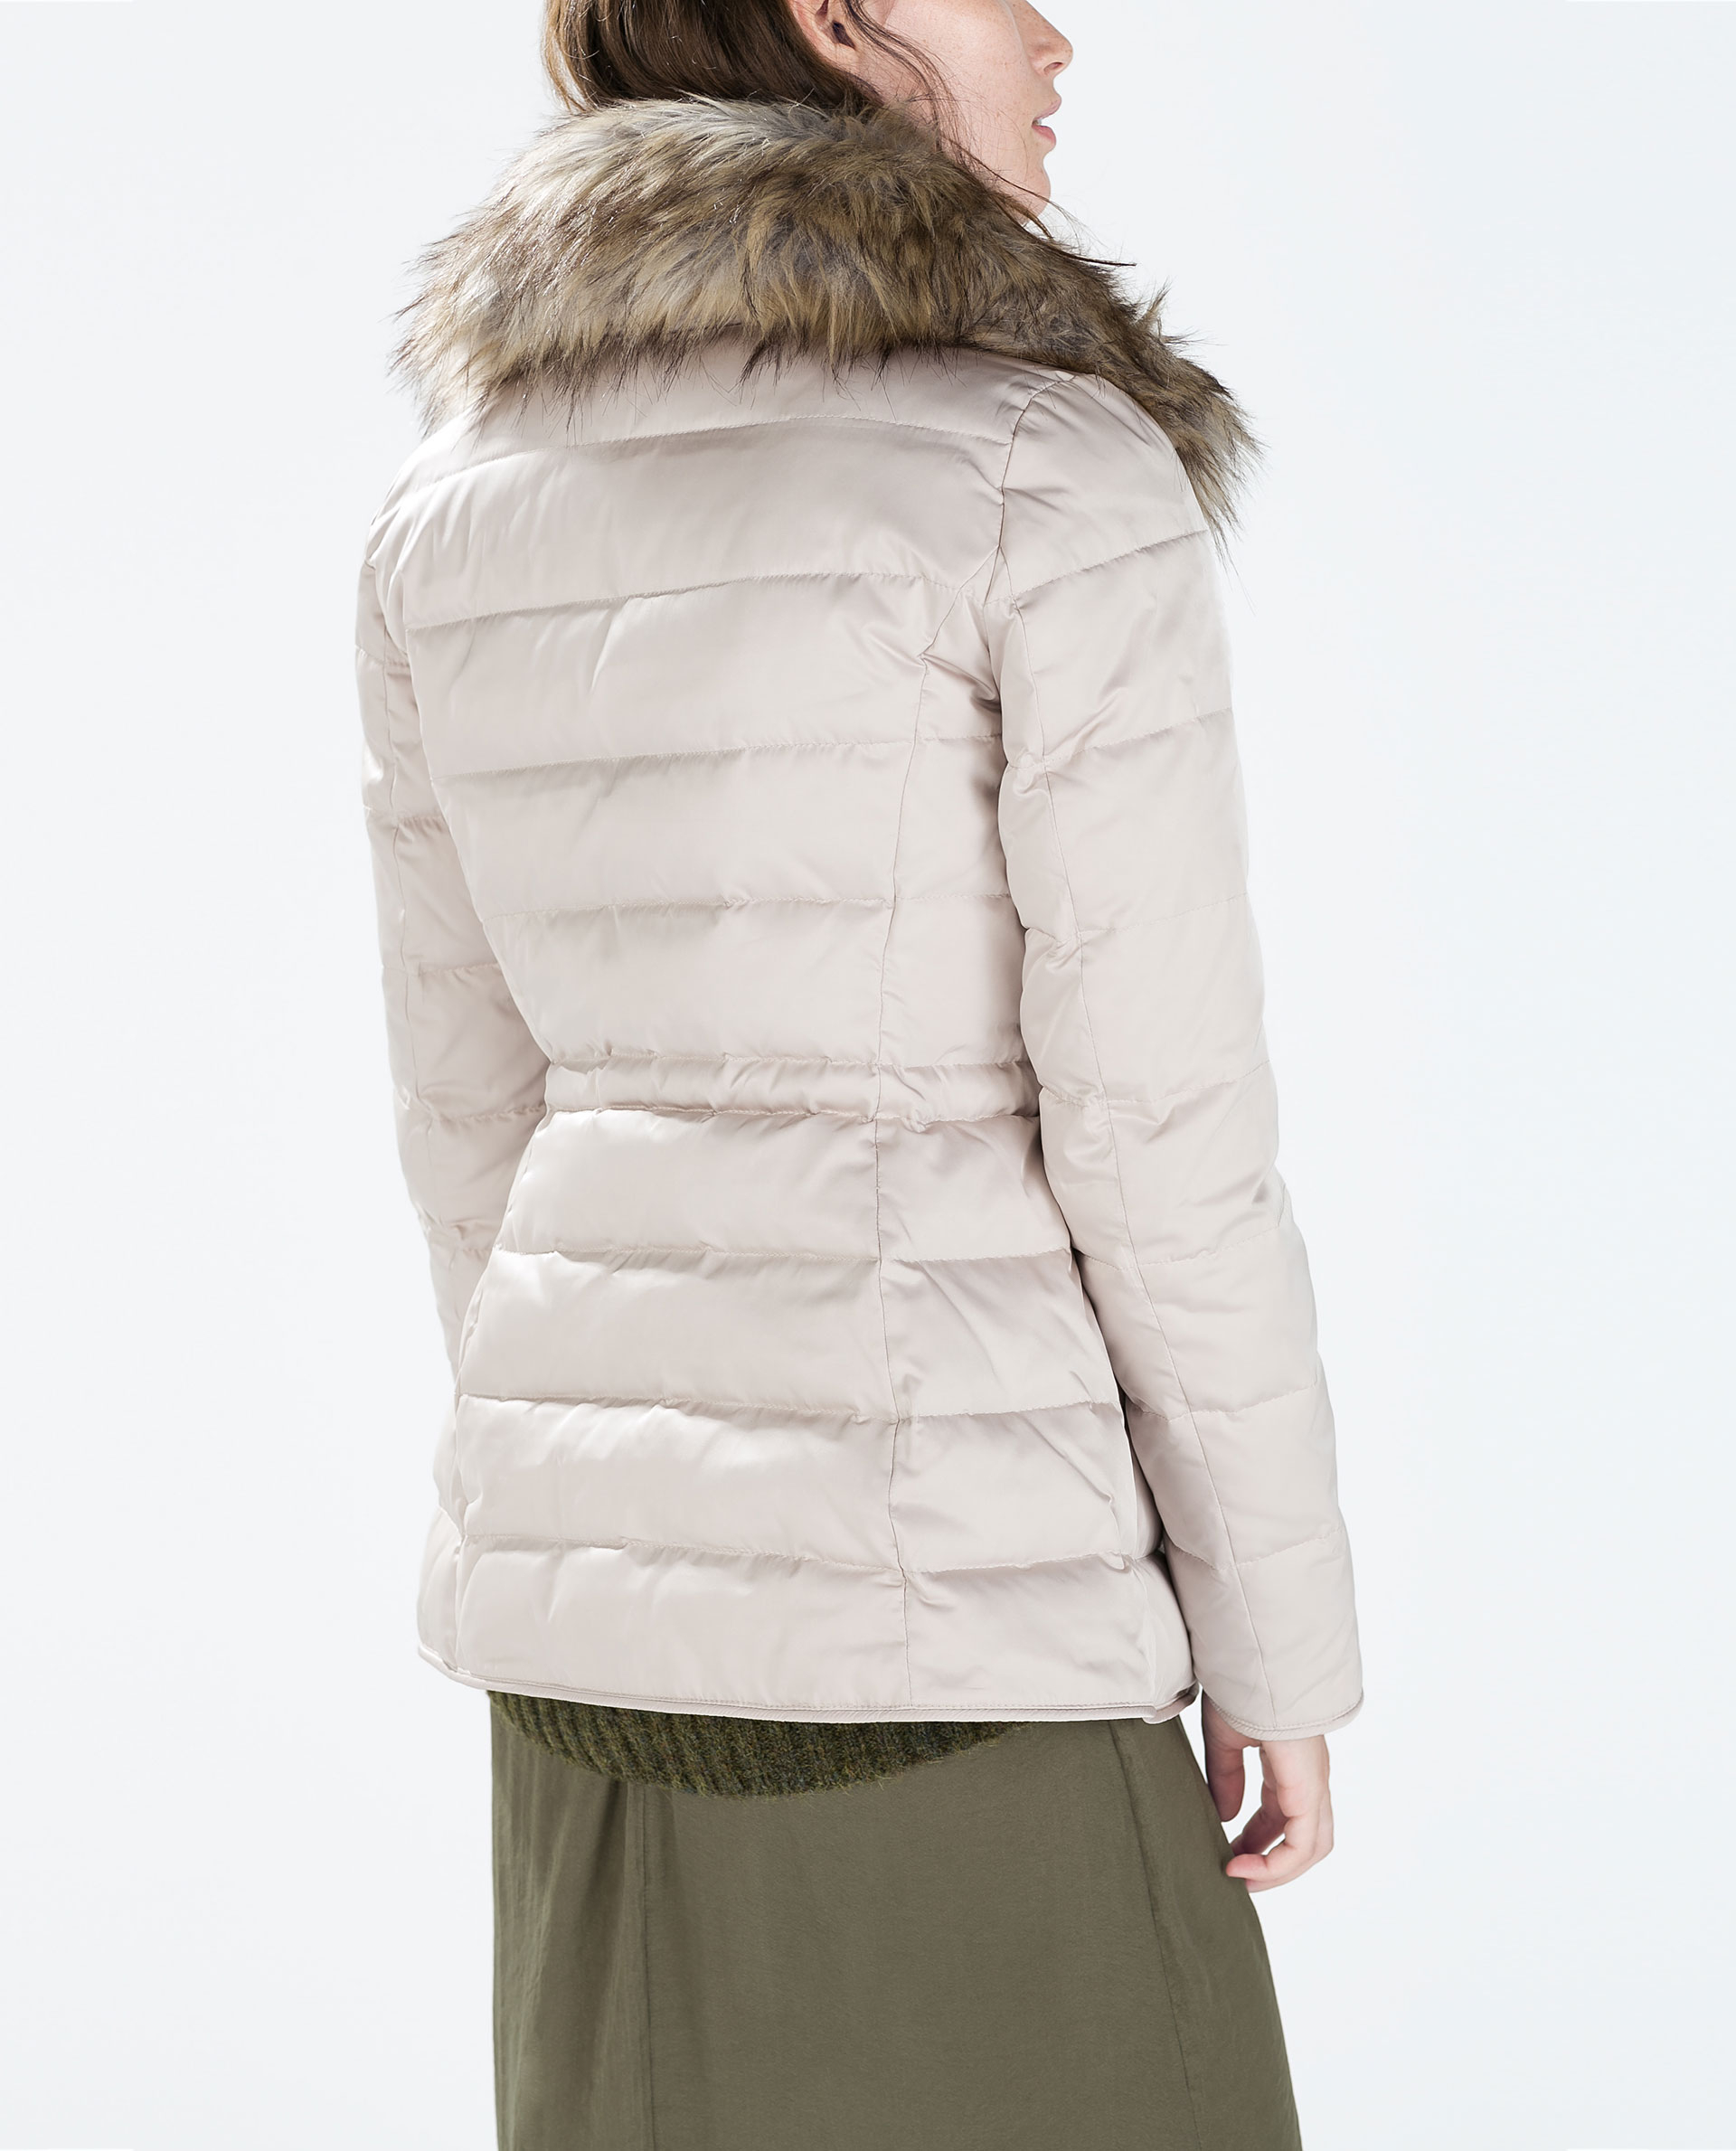 Zara Fitted Down Jacket With Fur Collar in White | Lyst